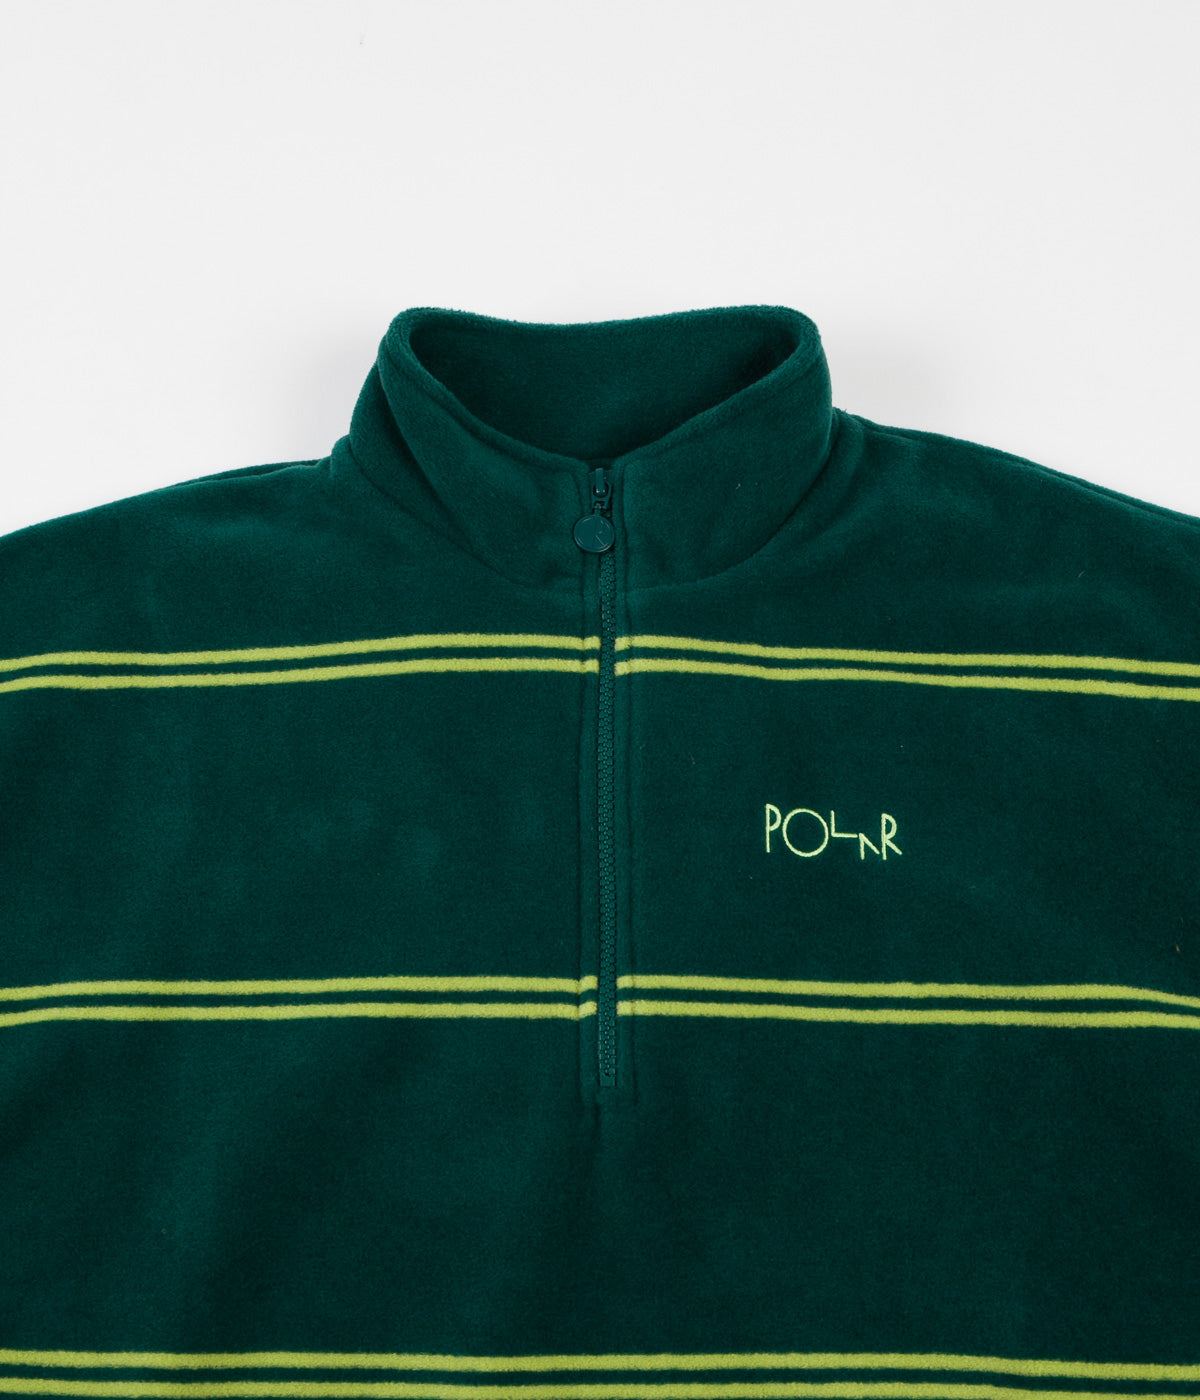 Polar Striped Fleece Pullover 2.0 Sweatshirt - Dark Green